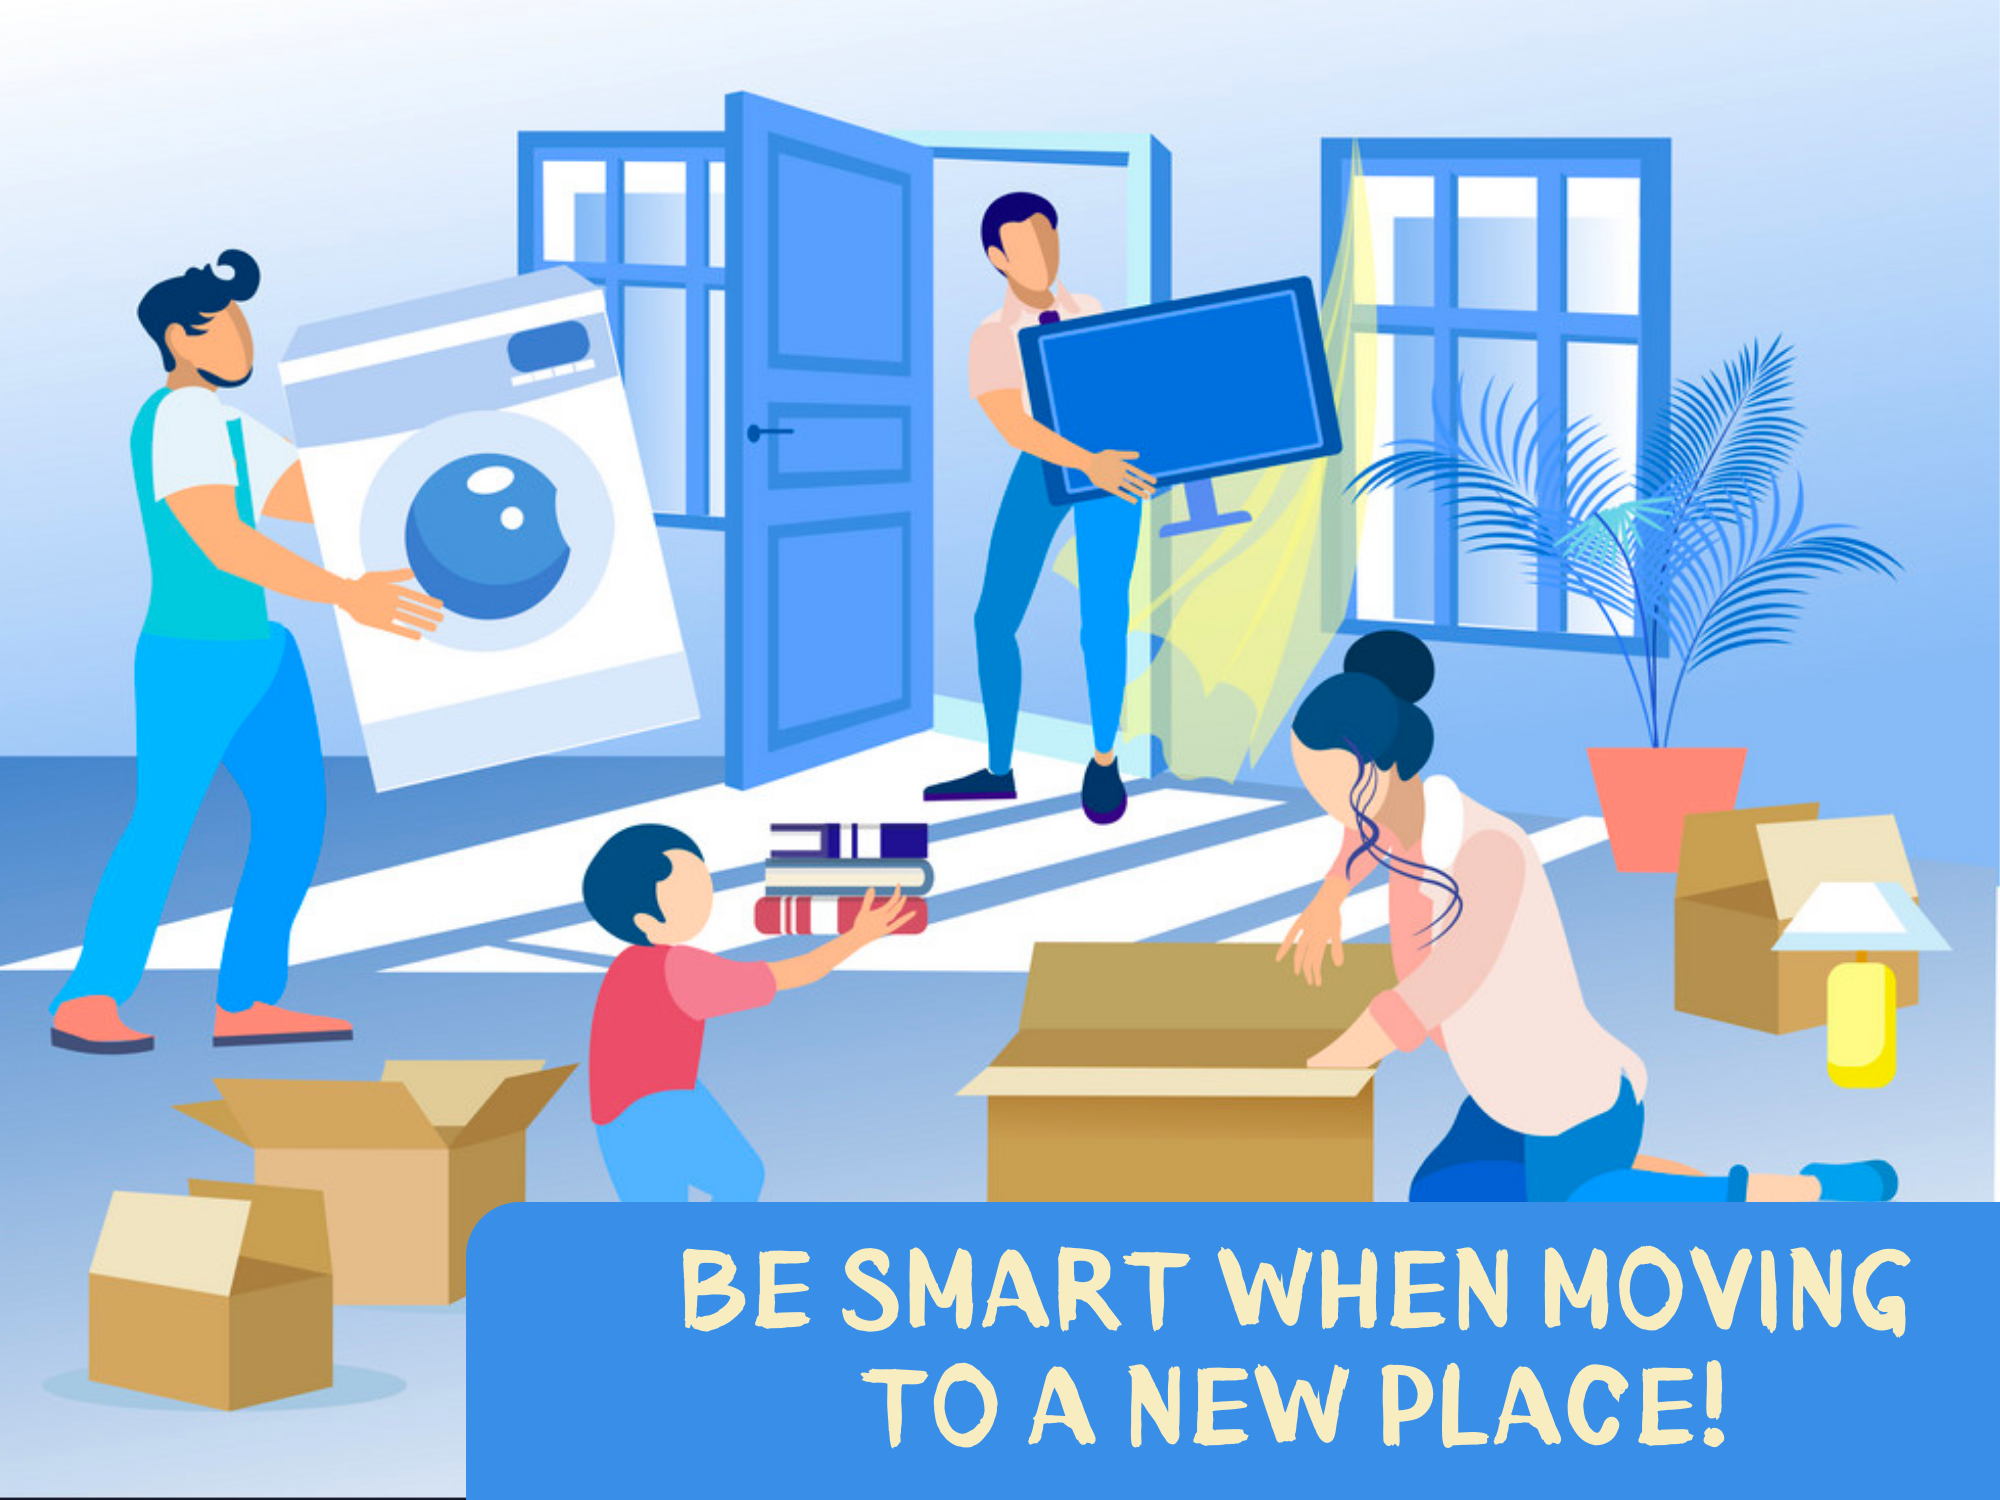 BE-SMART-WHEN-MOVING-TO-A-NEW-PLACE